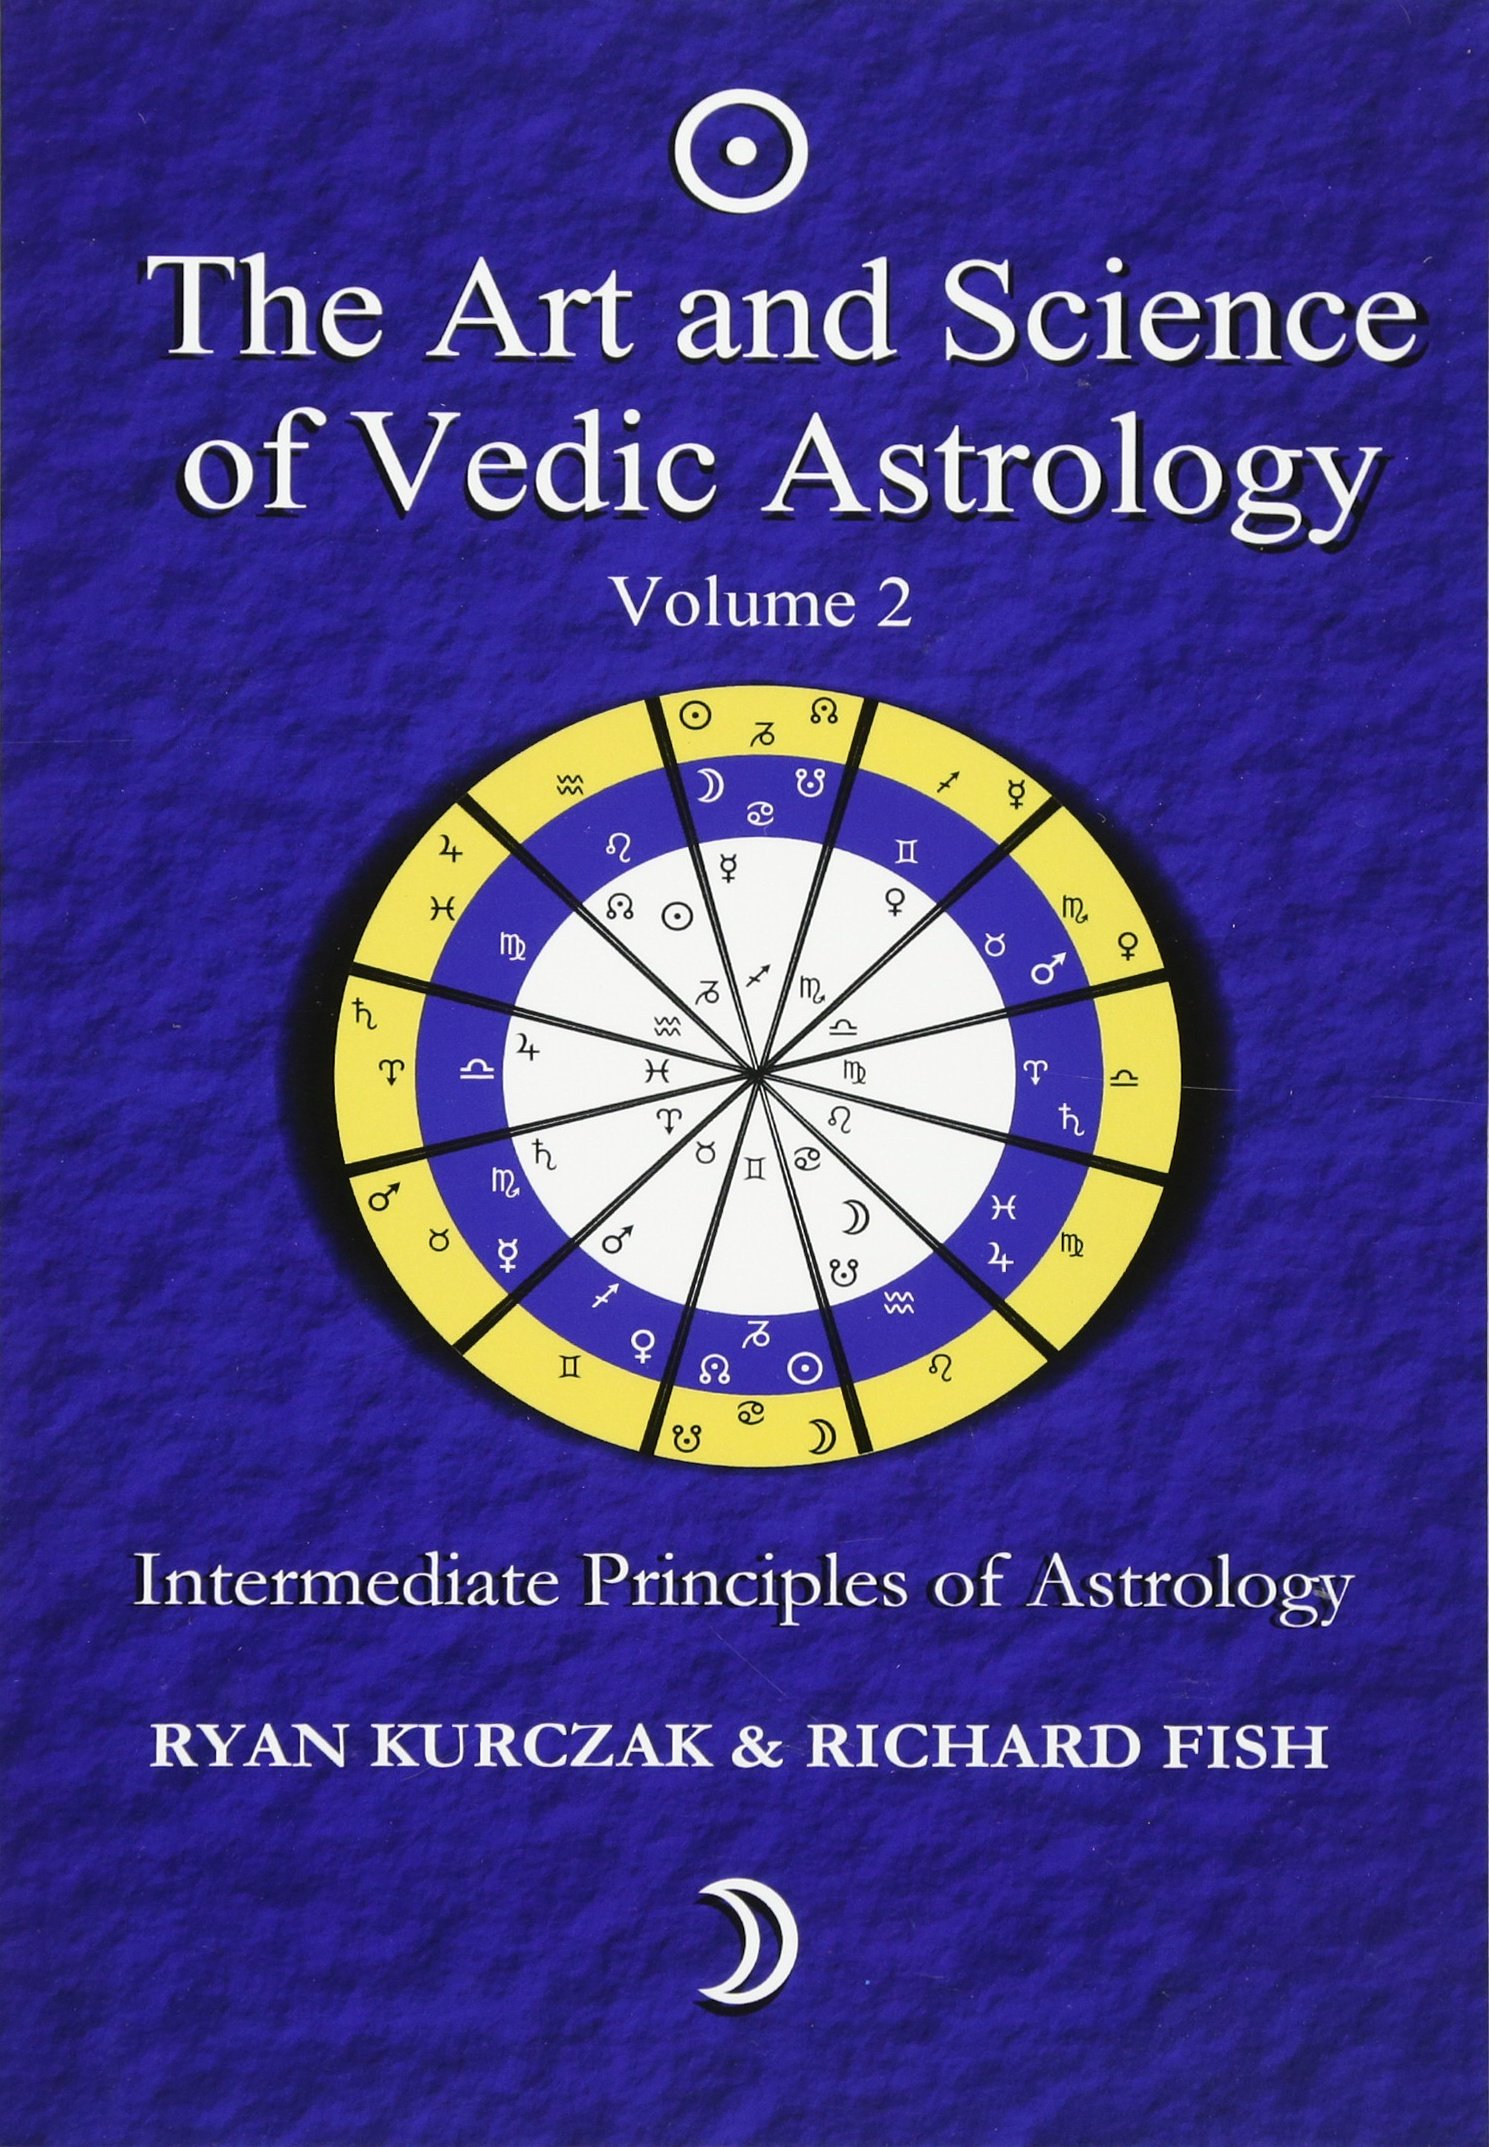 The Art and Science of Vedic Astrology Volume 2